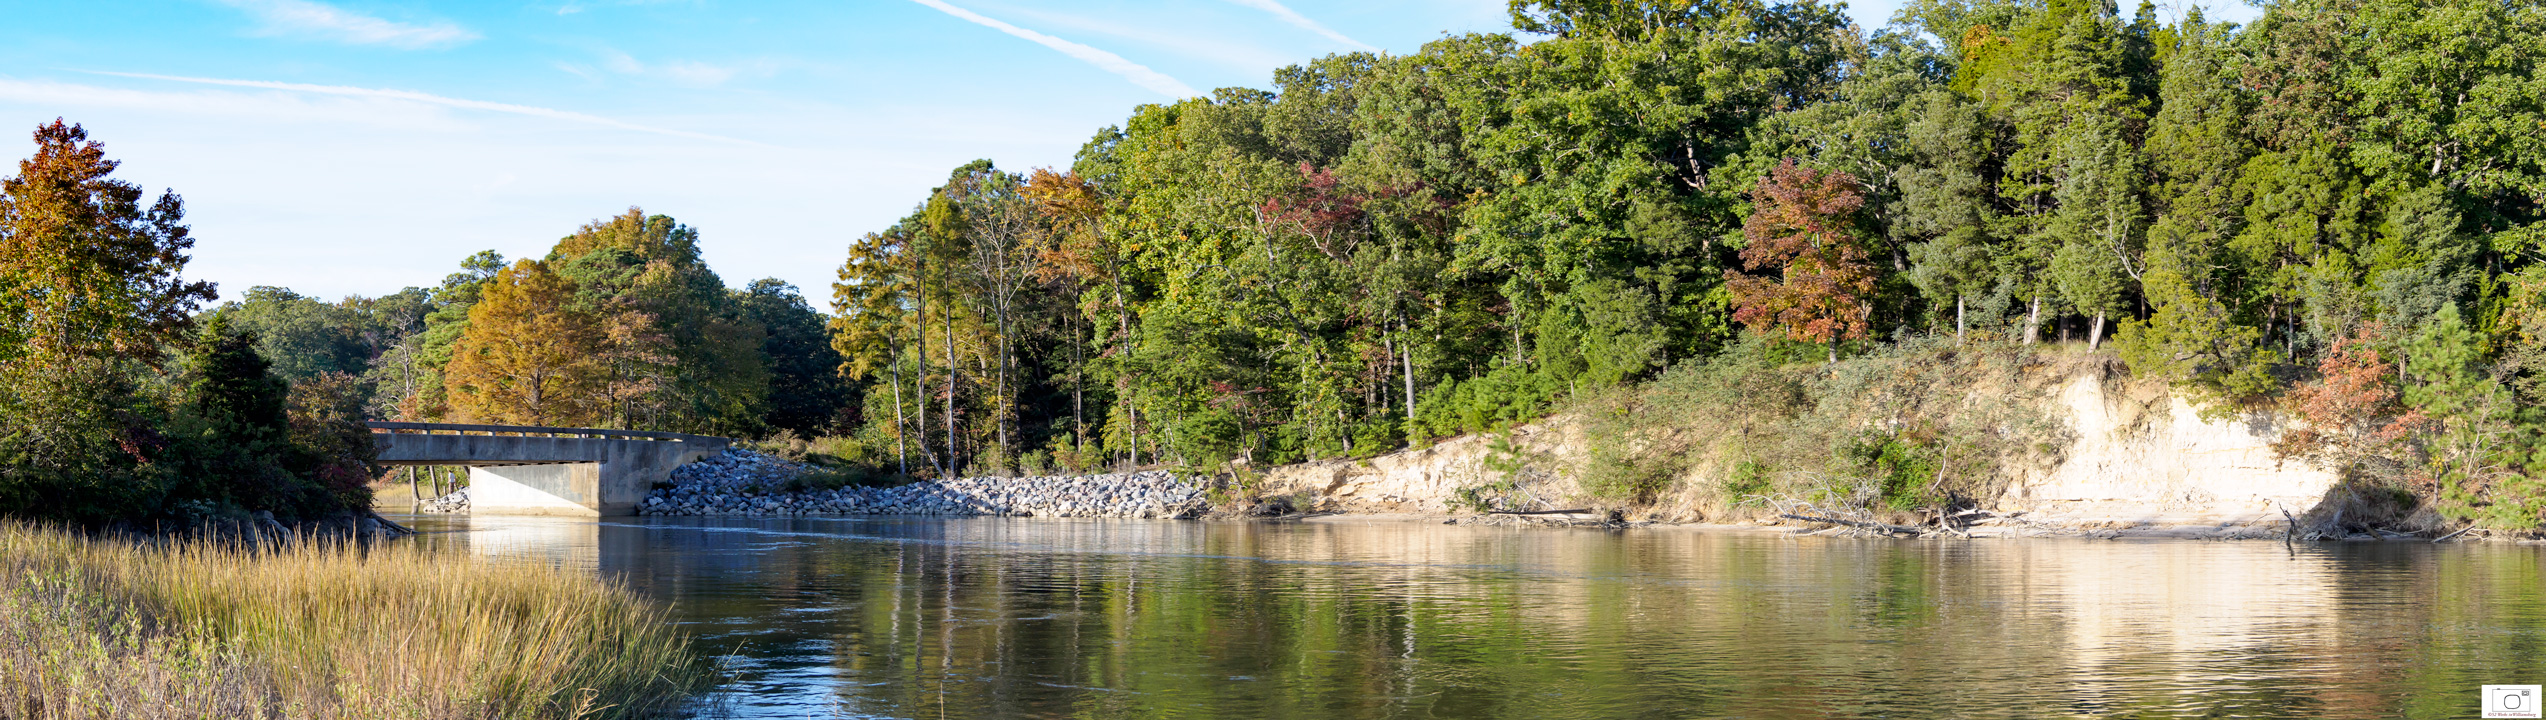 Fall Afternoon at College Creek Flowing Toward the Beach - October 2015